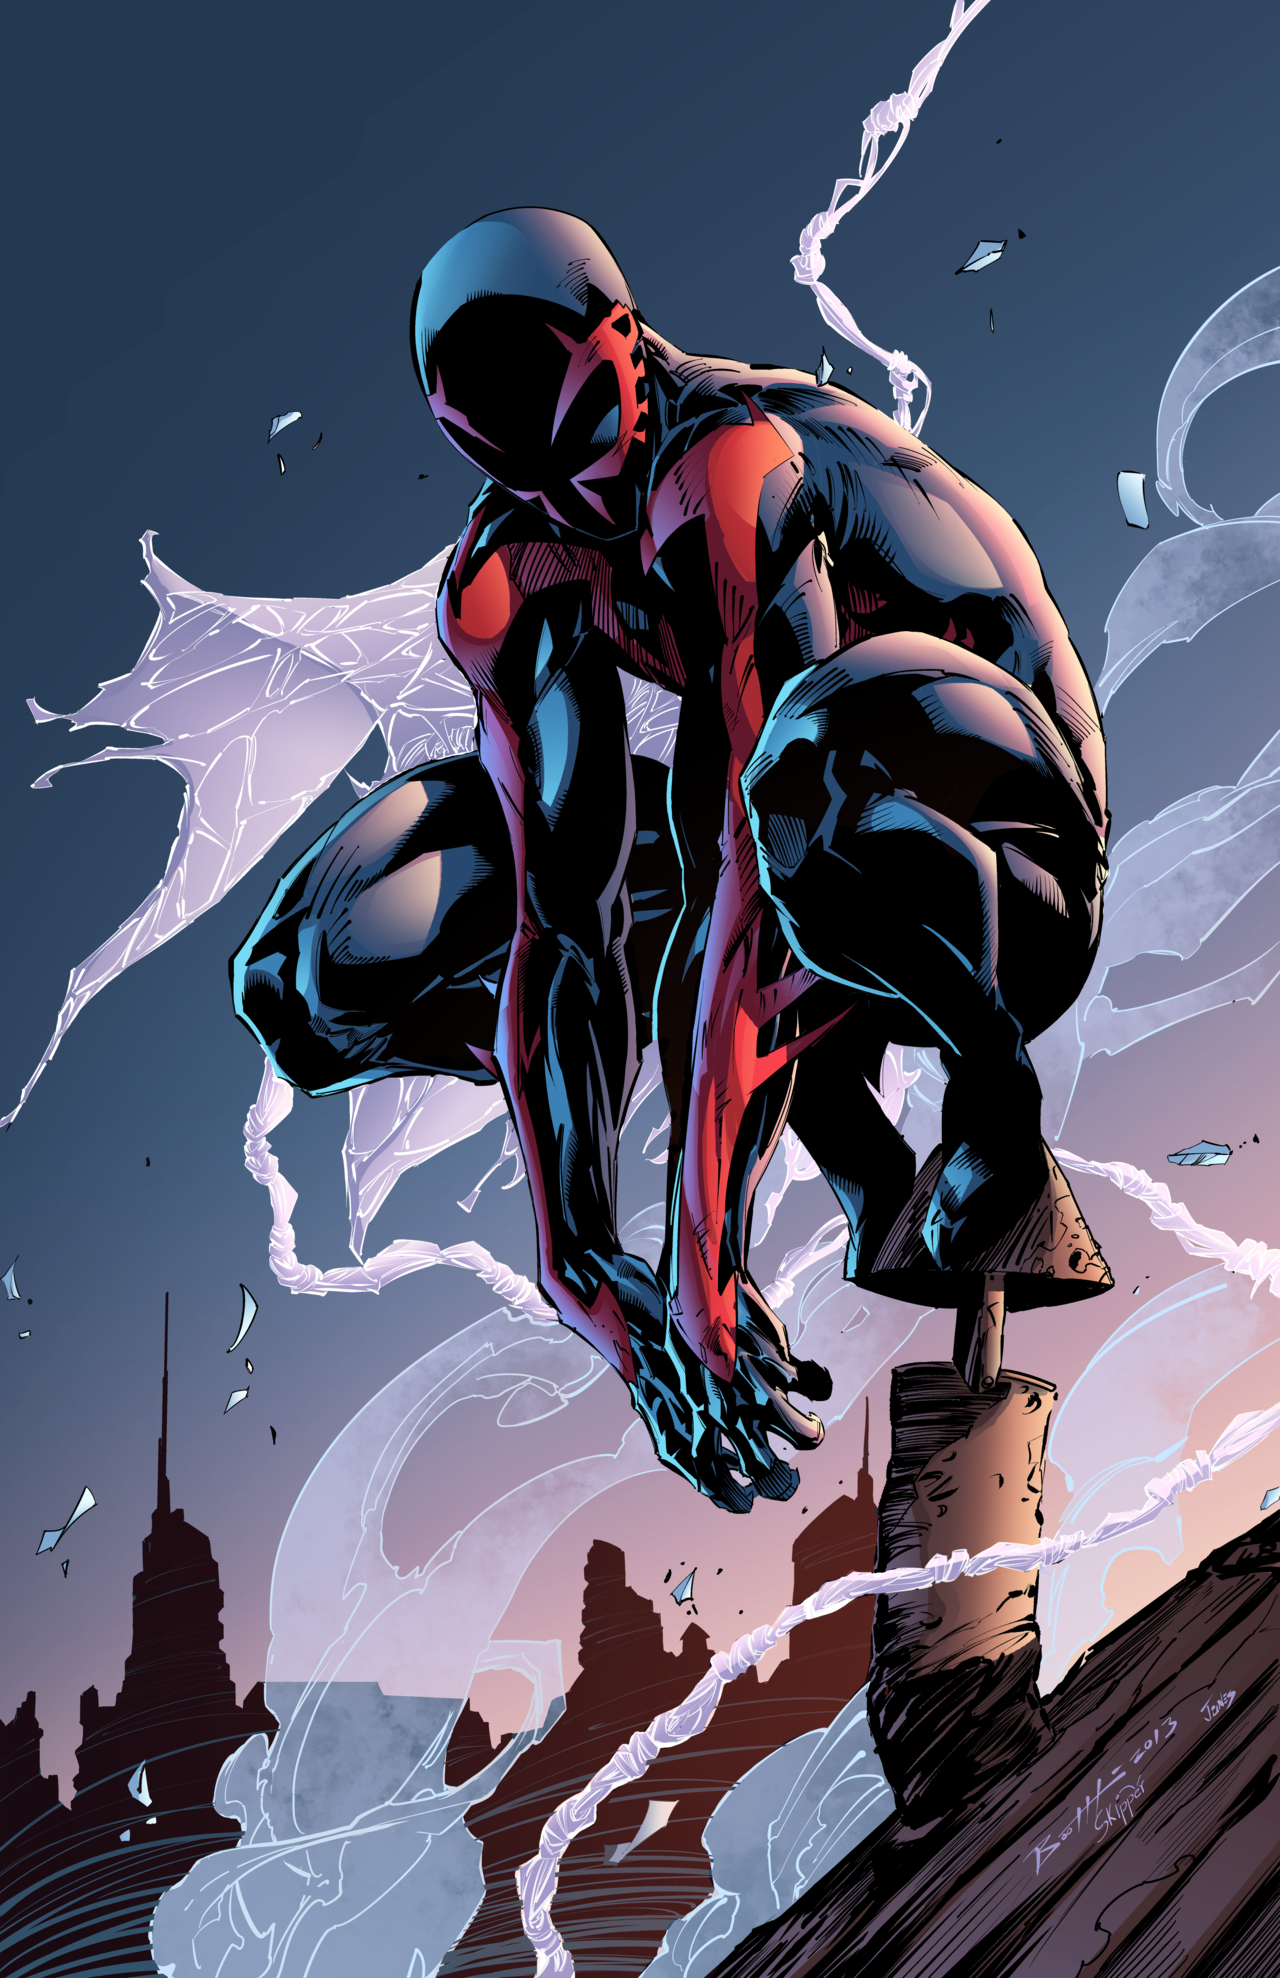 spiderman comic iphone wallpaper, spiderman 2099 iphone wallpaper, ultimate spiderman coloring pages, spiderman logo iphone wallpaper, black spiderman iphone wallpaper, spiderman iphone 4s wallpaper, 